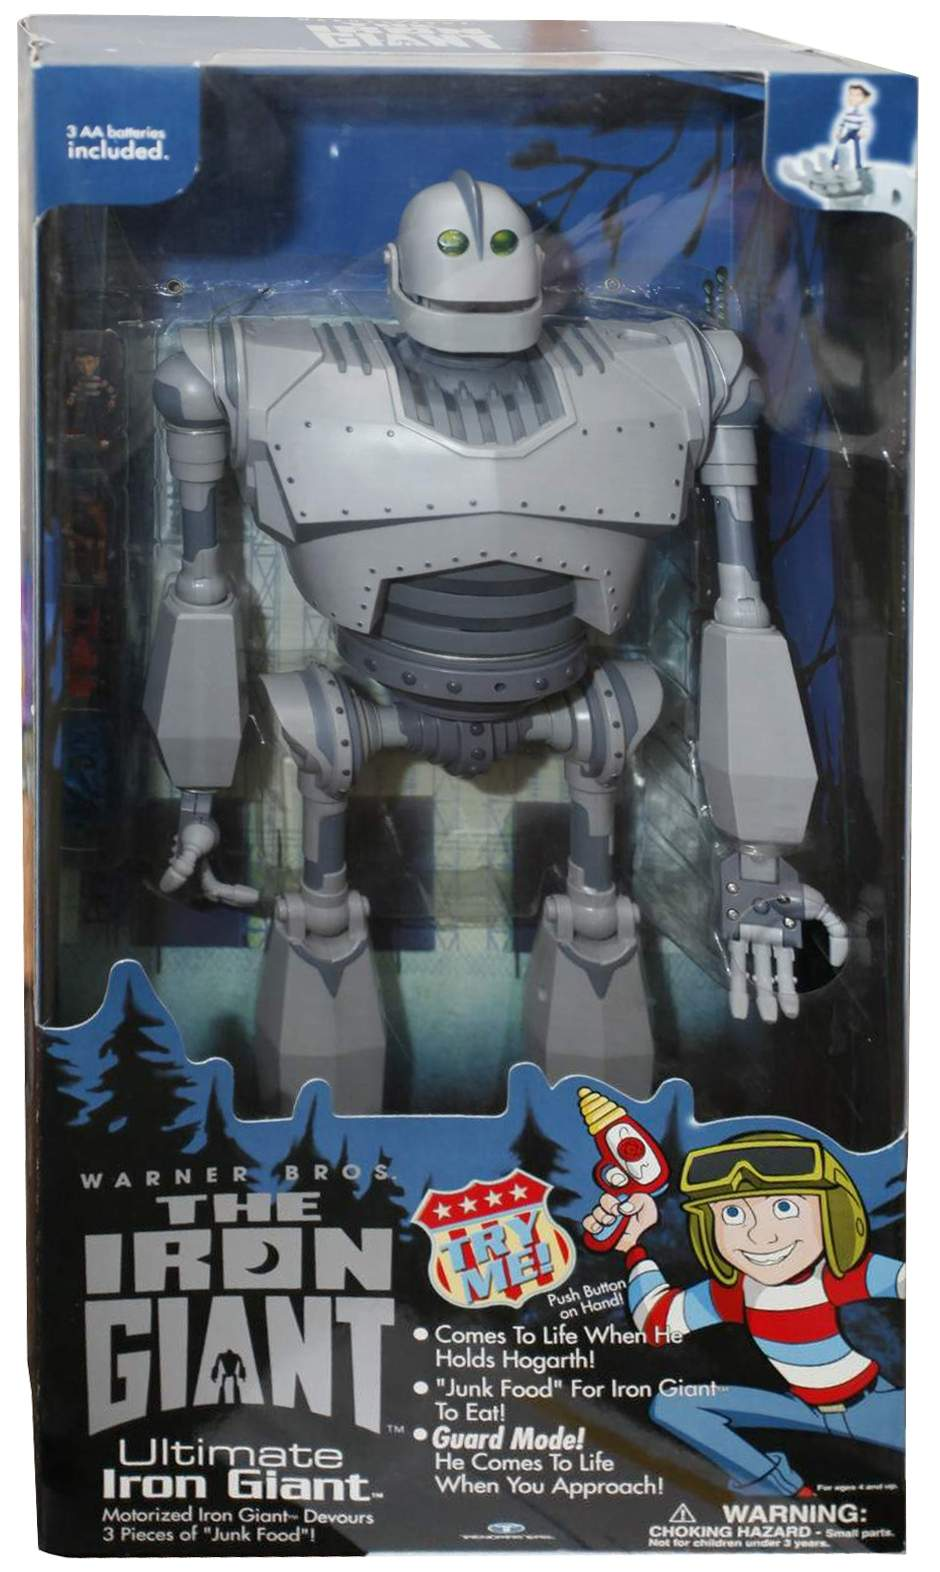 The Iron Giant Robot The Old Robots Web Site